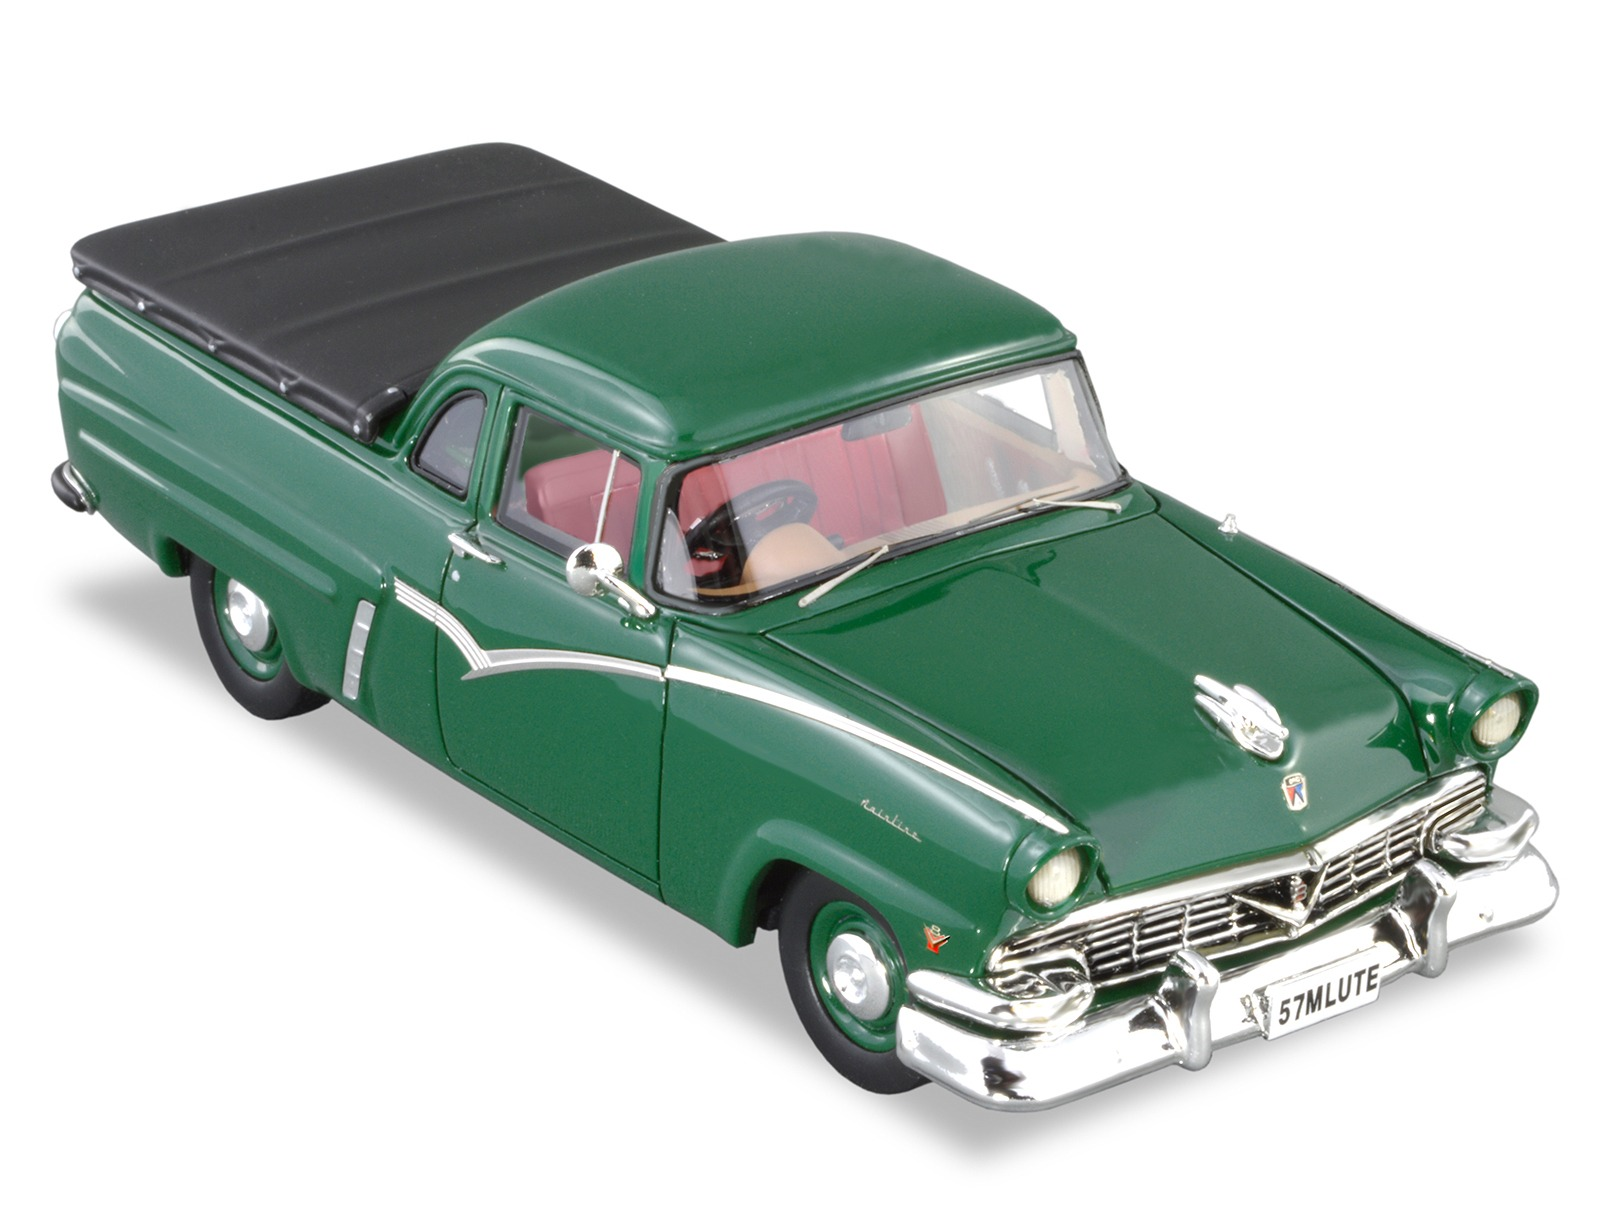 1957 Ford Mainline Ute – Dark Green